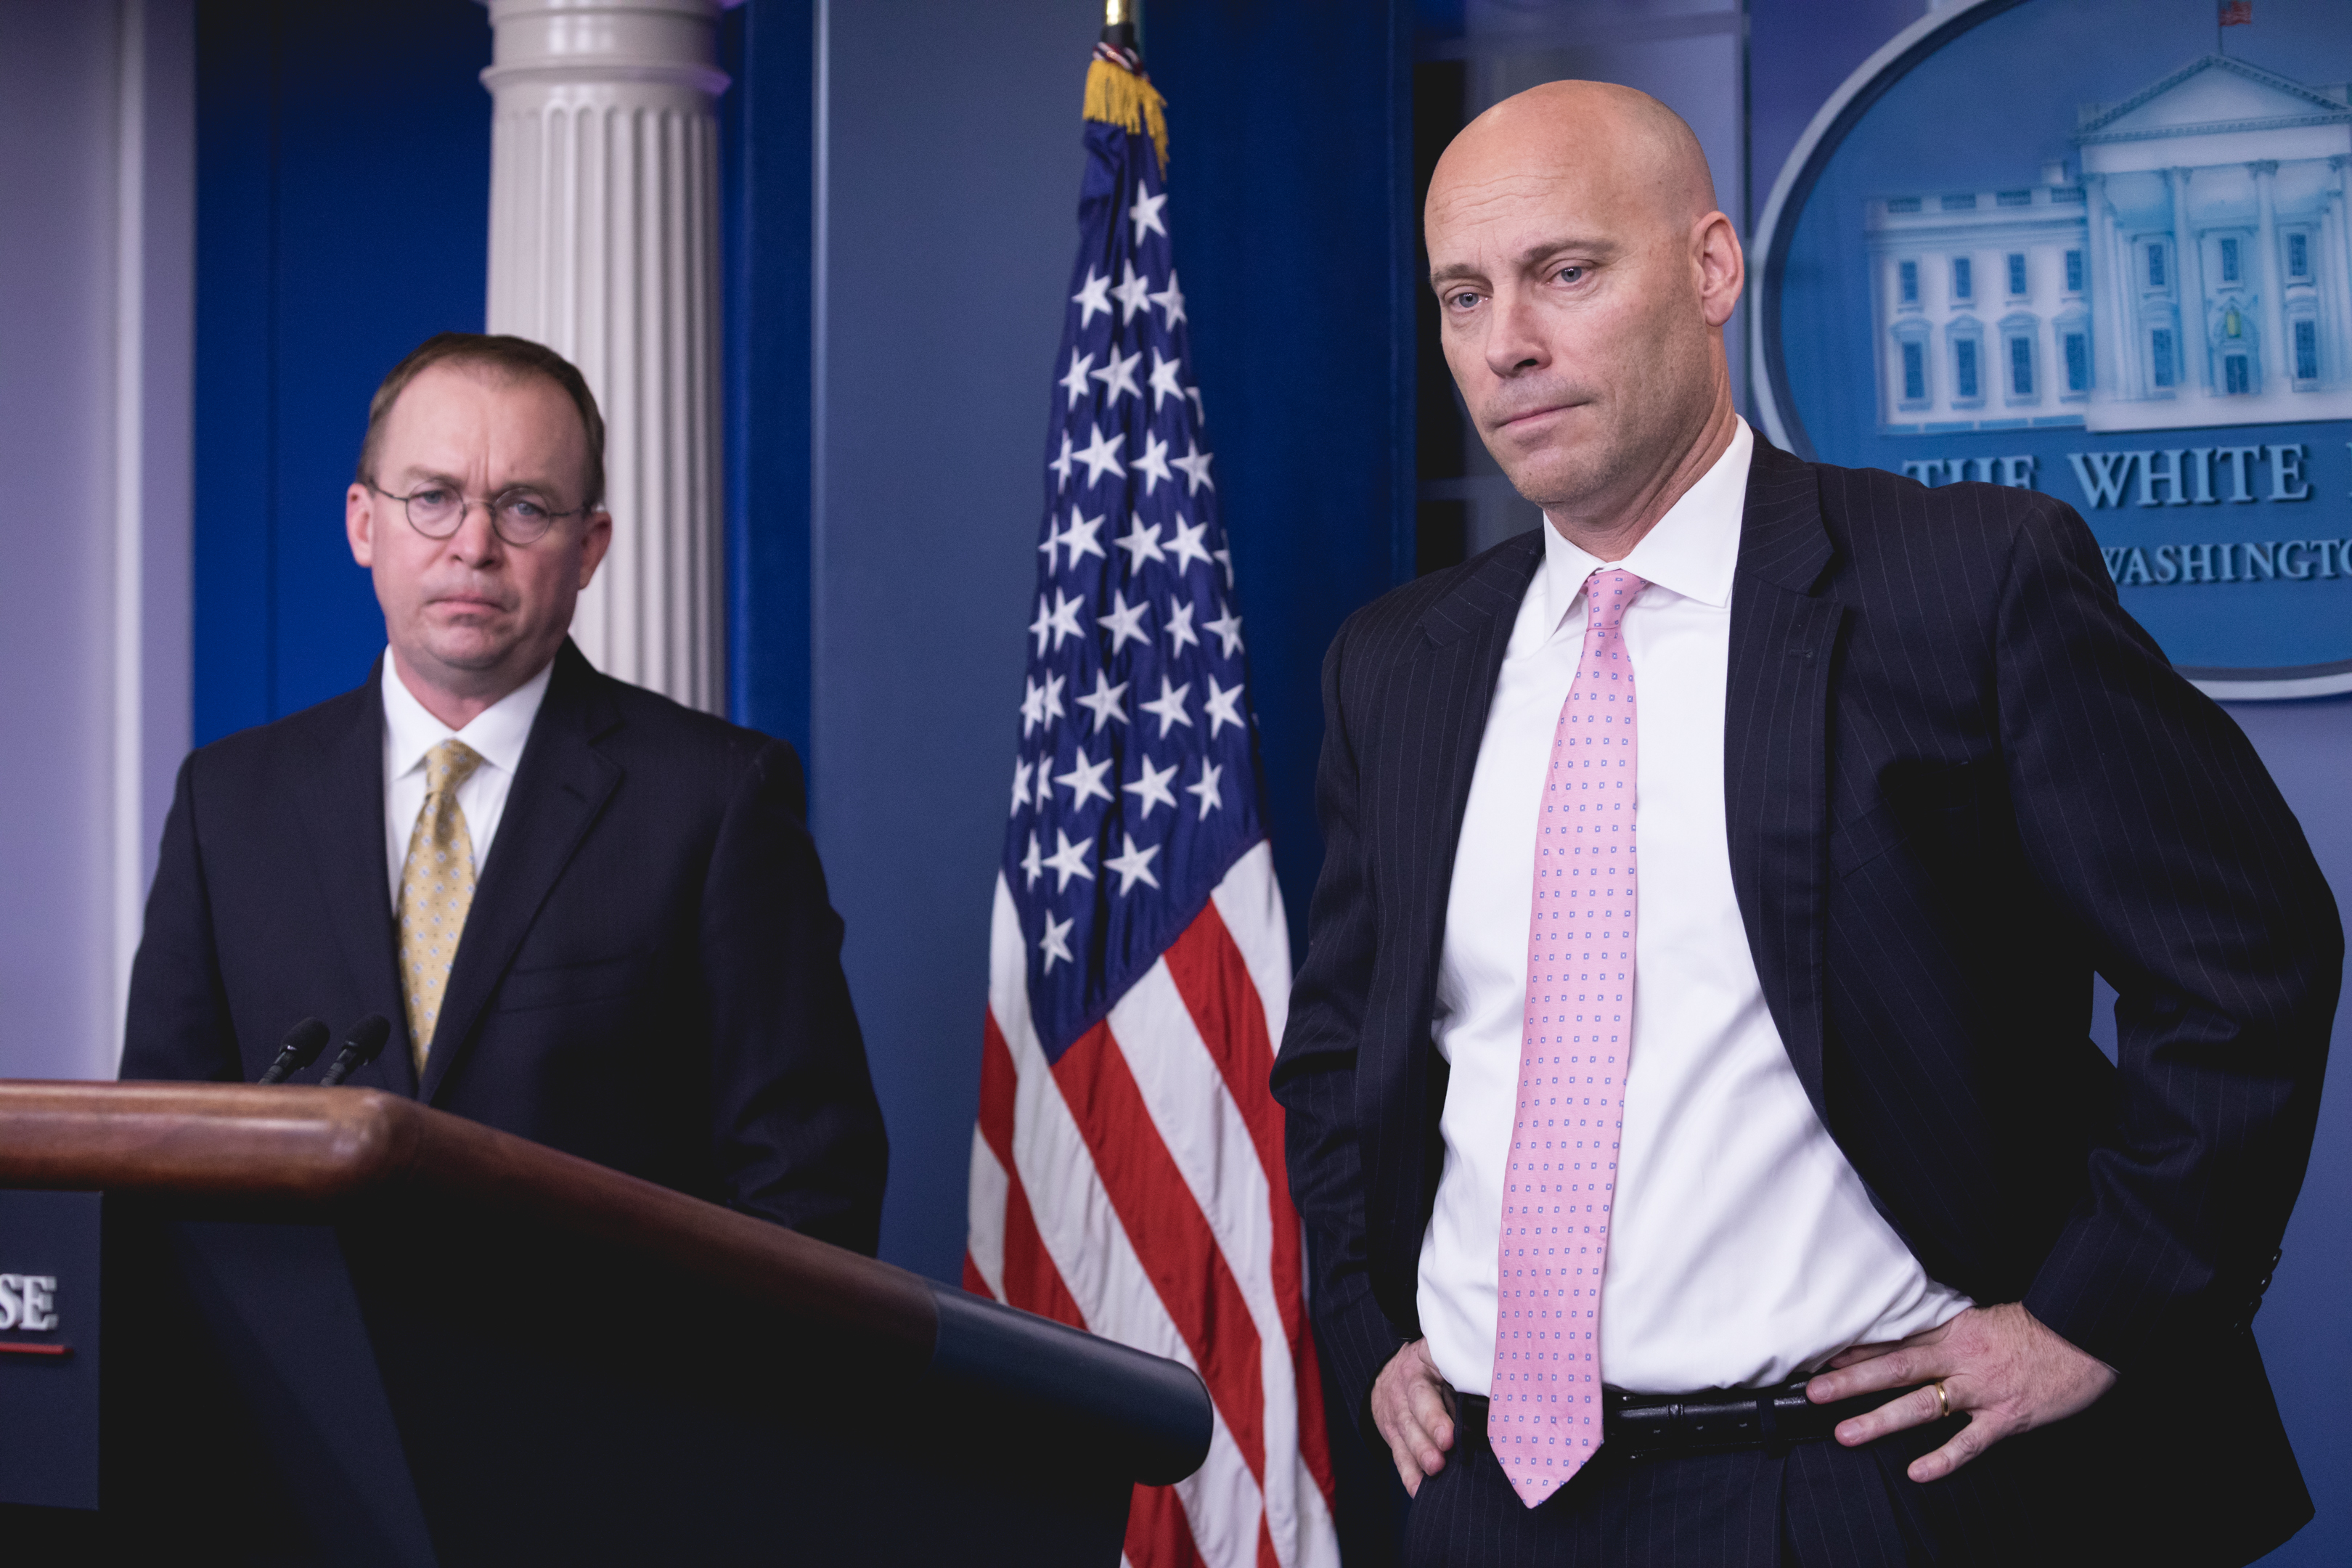 White House Briefing on U.S. Shutdown